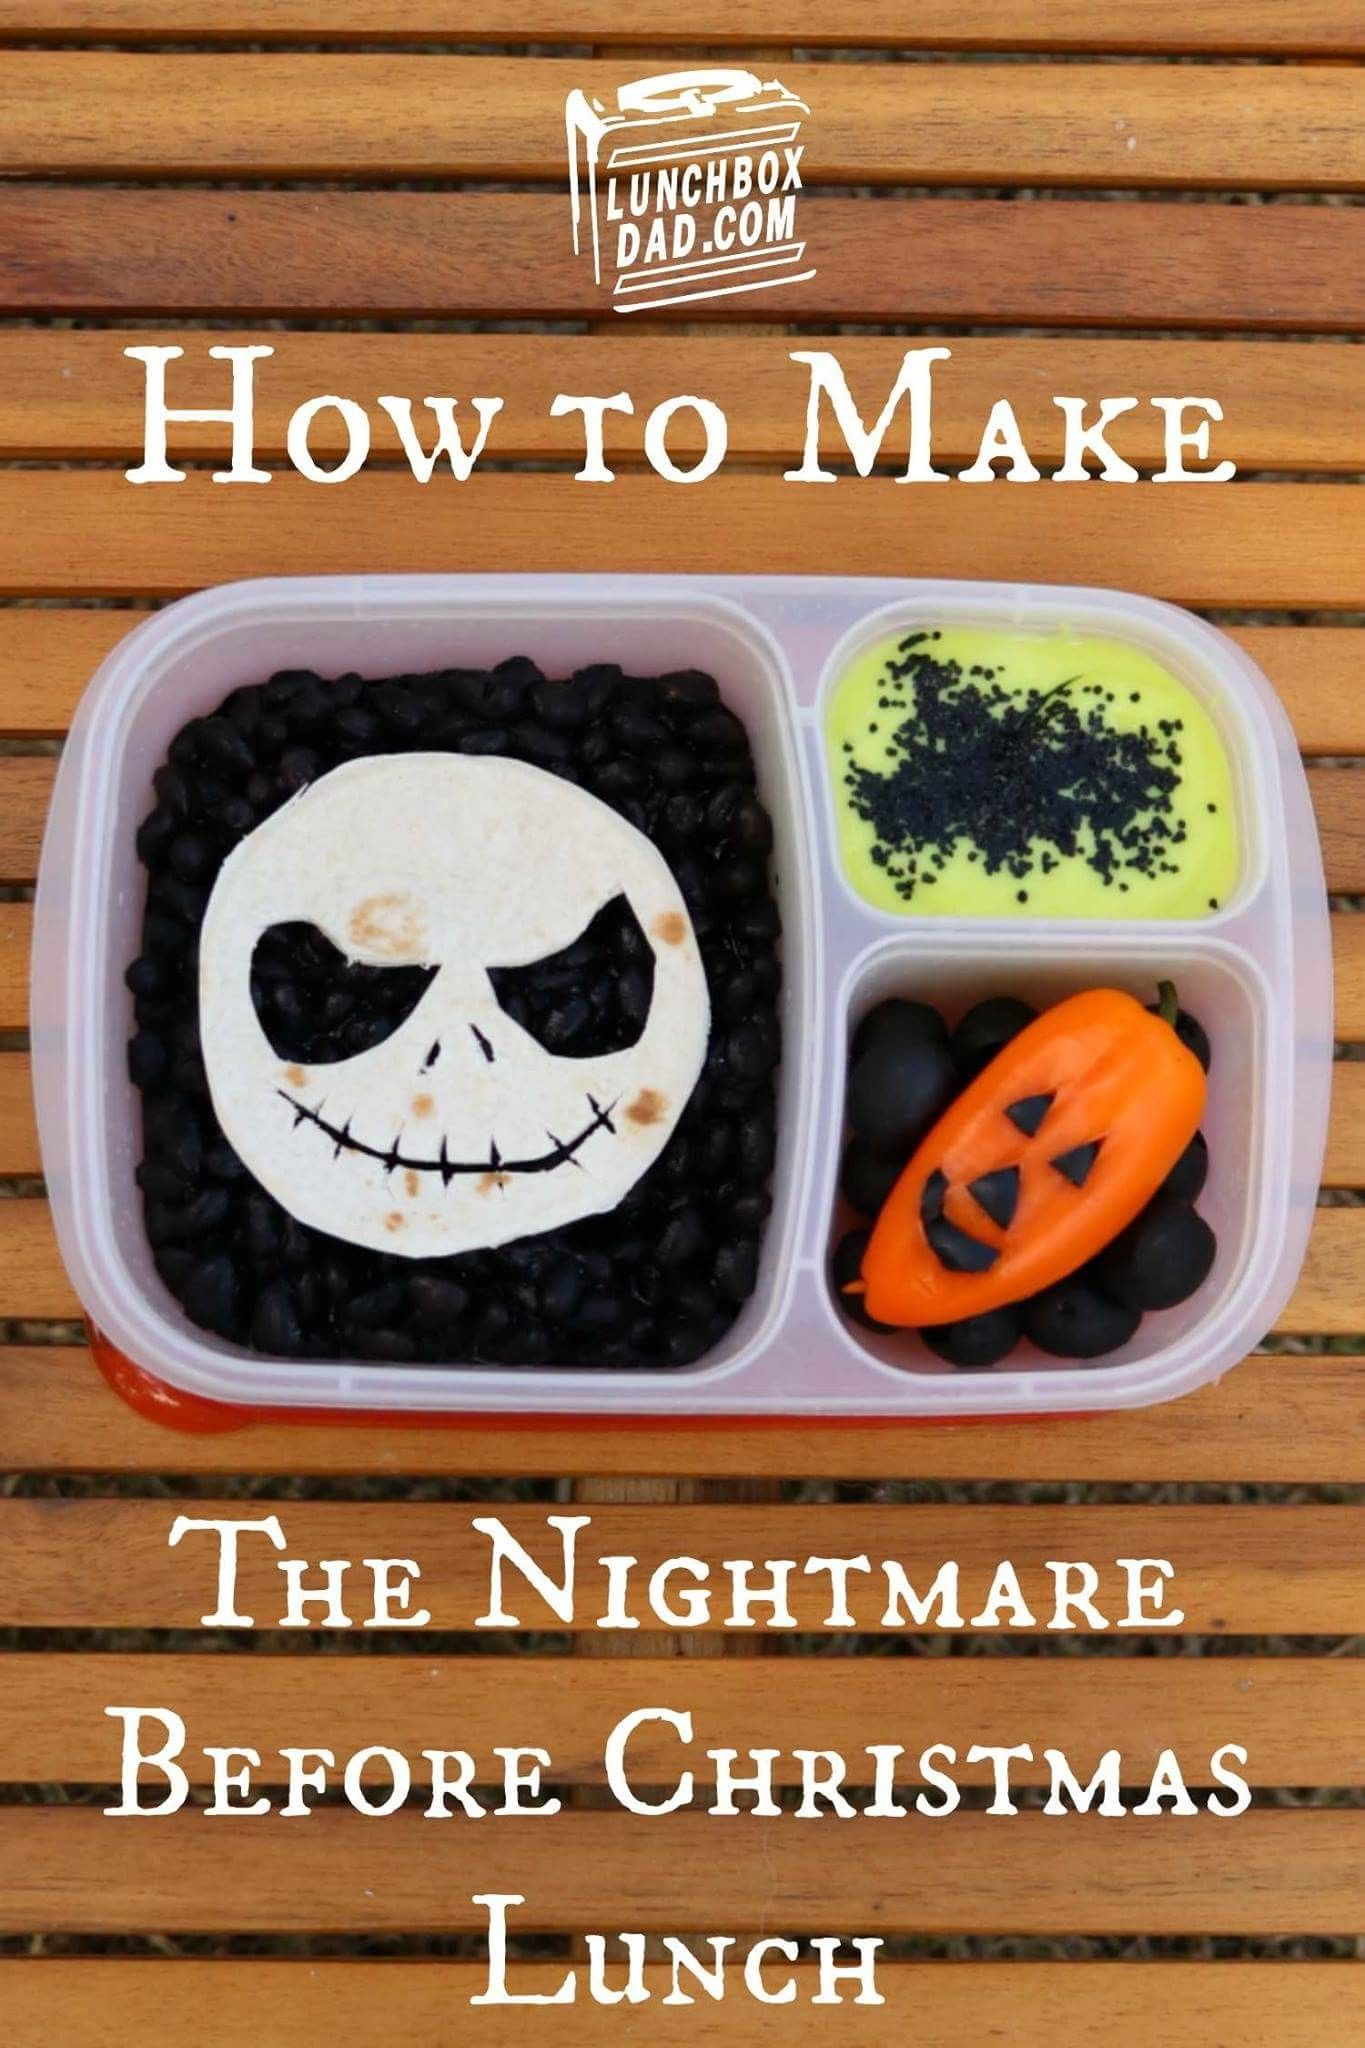 Pin by Chantal Wolf on BENTO!   Lunch box, Nightmare before christmas, Lunch